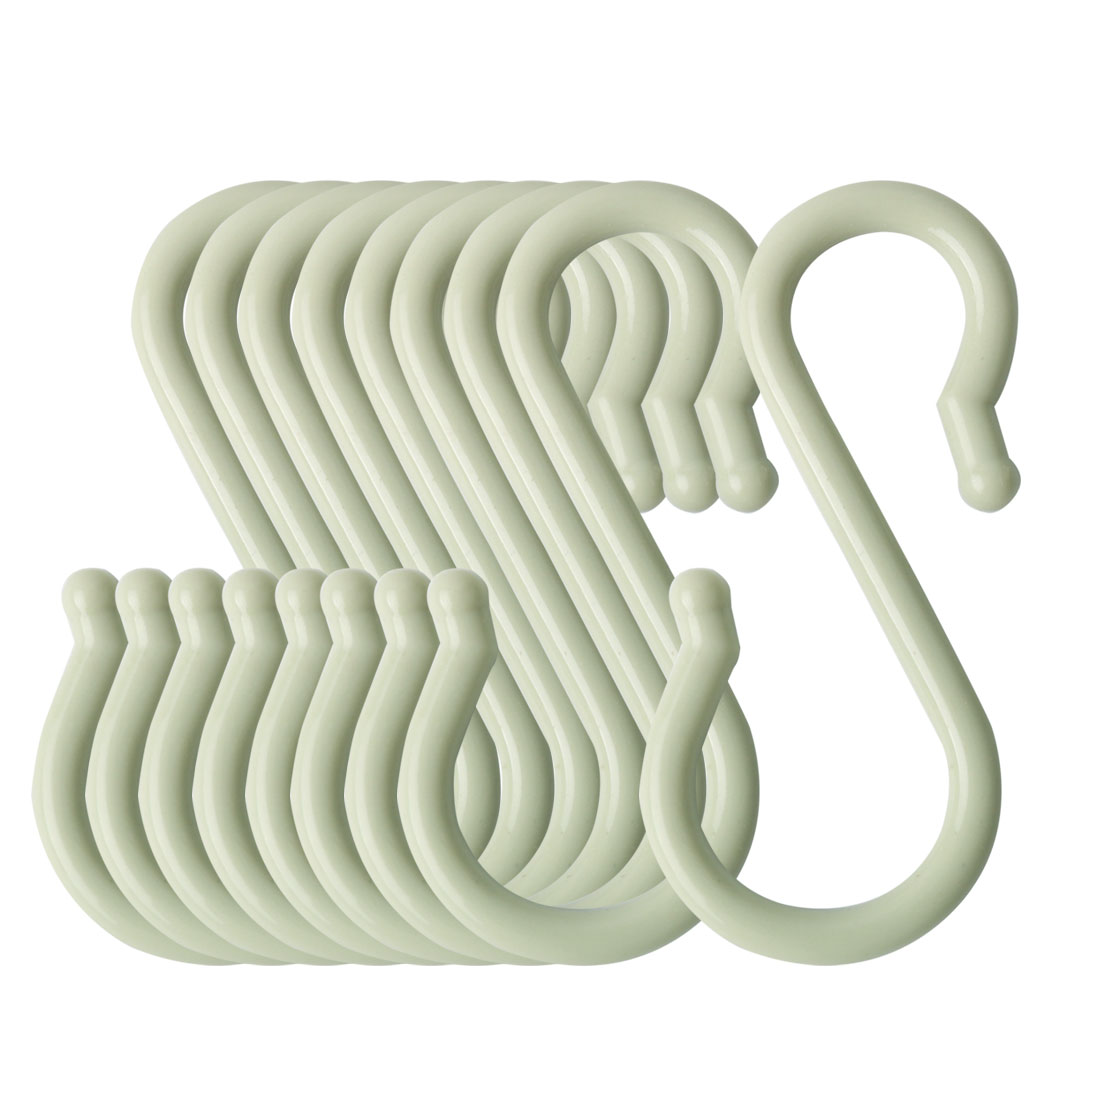 9 Pack S Shaped Hook Plastic for Kitchen Utensils Towel Hanger Light Green